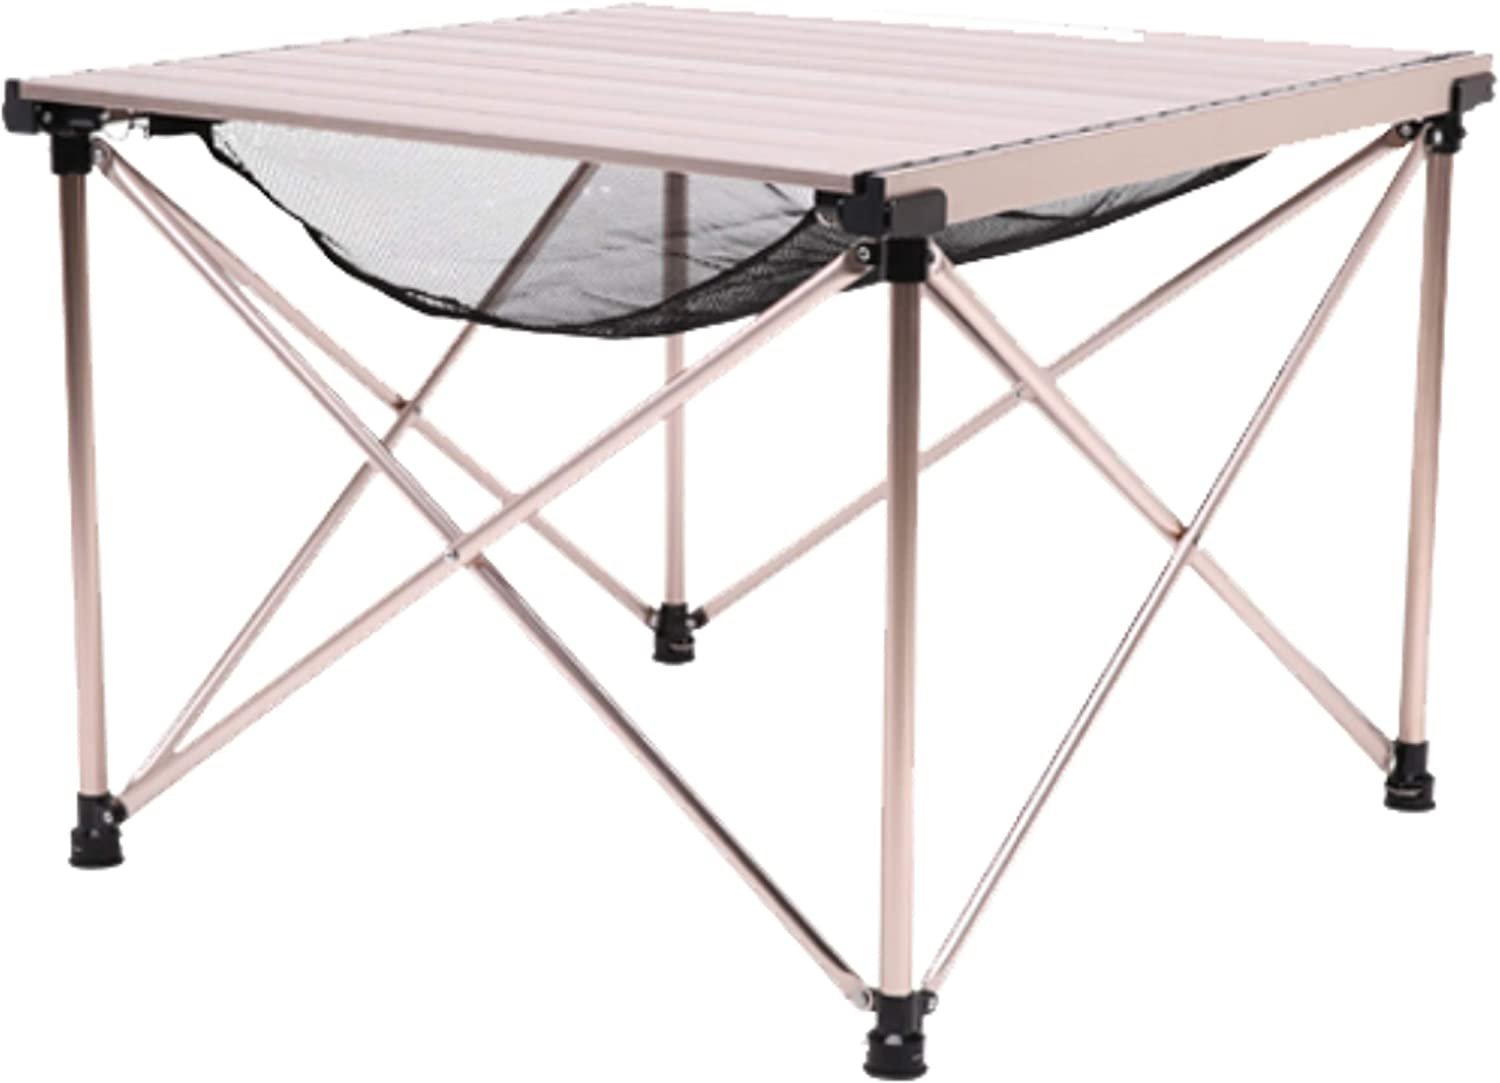 Grilling Rugged Folding Table with Roll Top Aluminum Design Portable Lightweight Table for Lounging and Cooking BLACKDEER Adjustable Height Camping Table